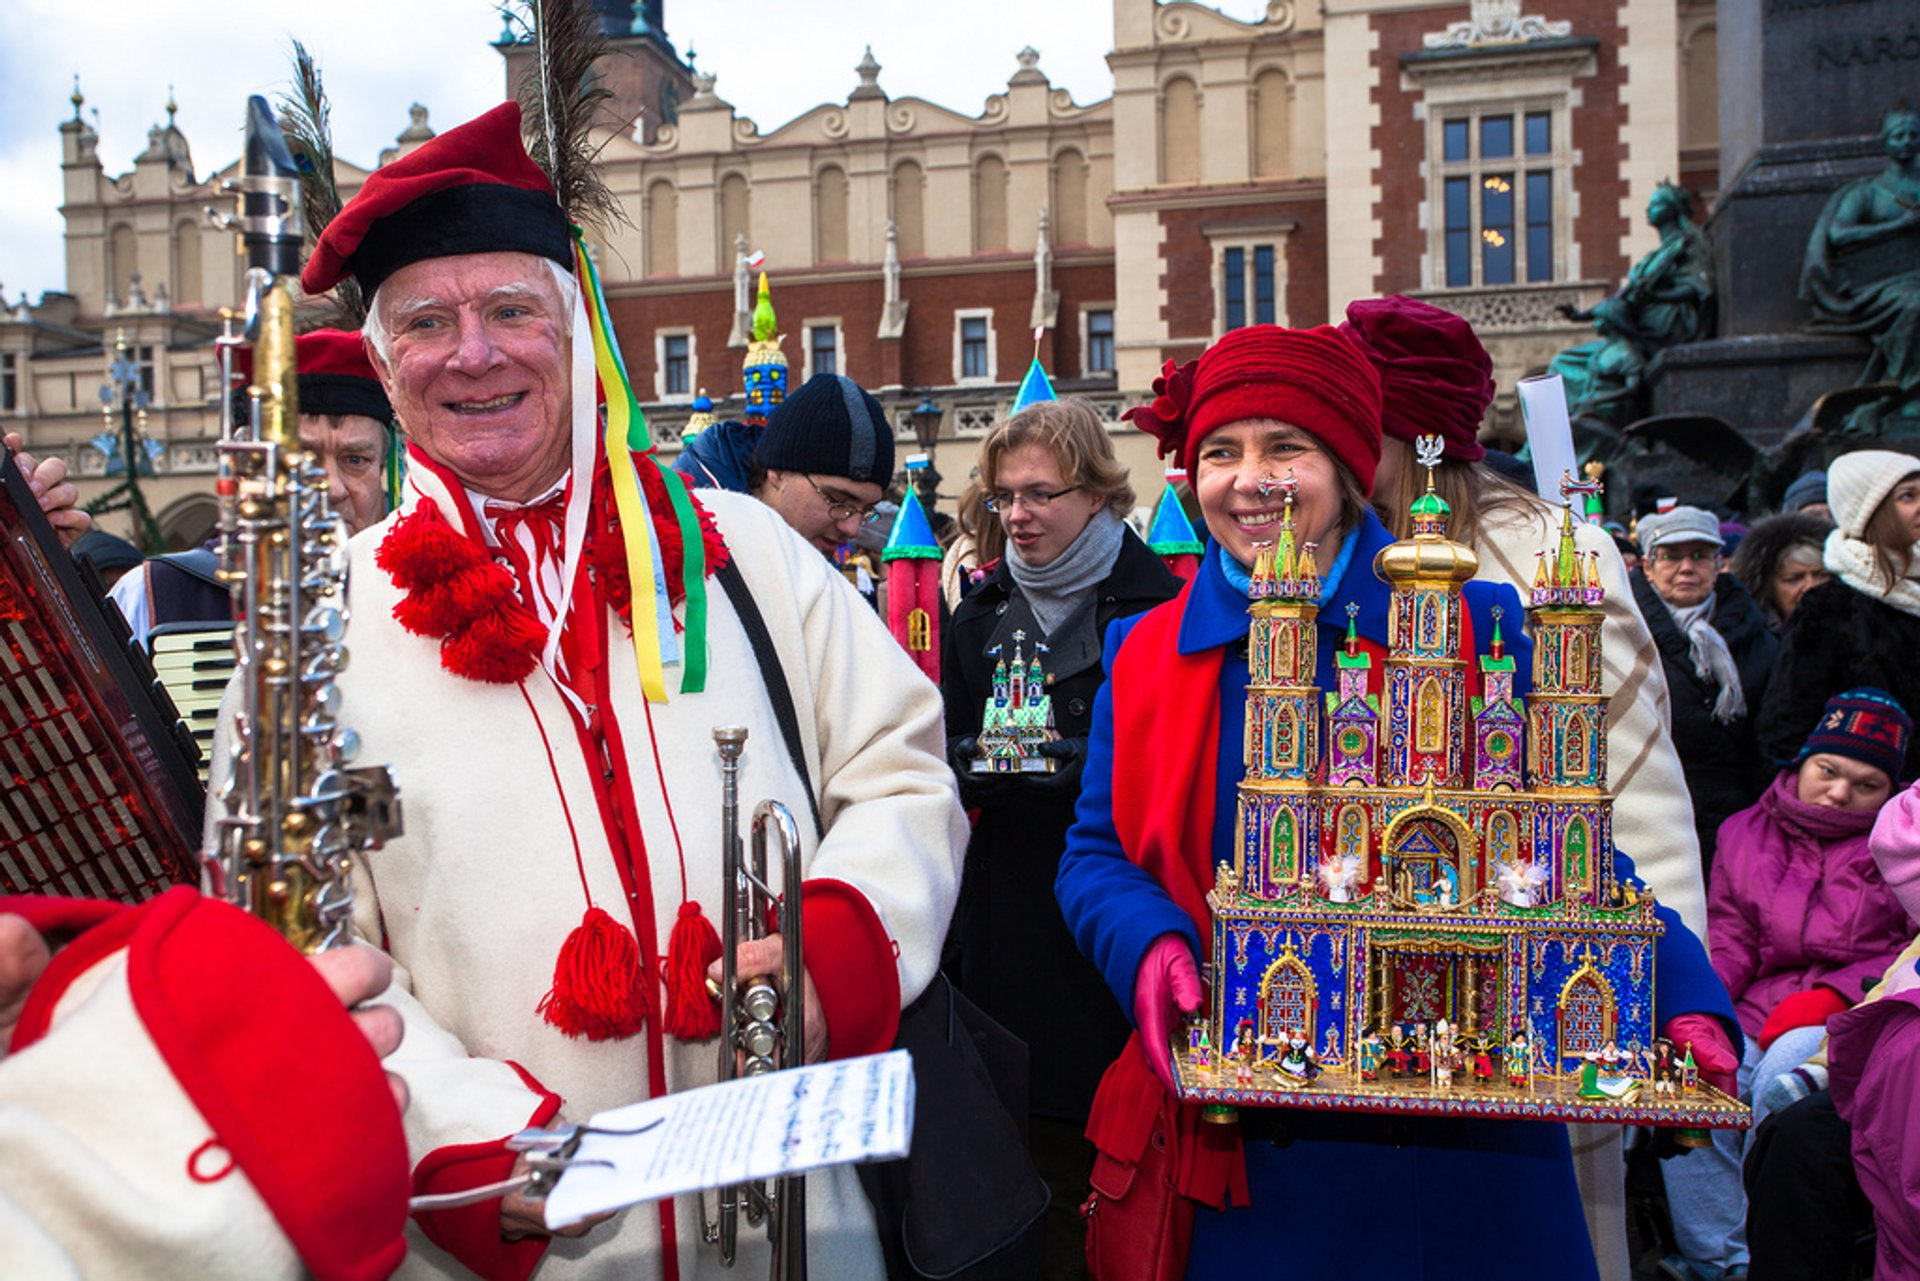 Szopka or Nativity Scene Competition in Krakow 2020 - Best Time